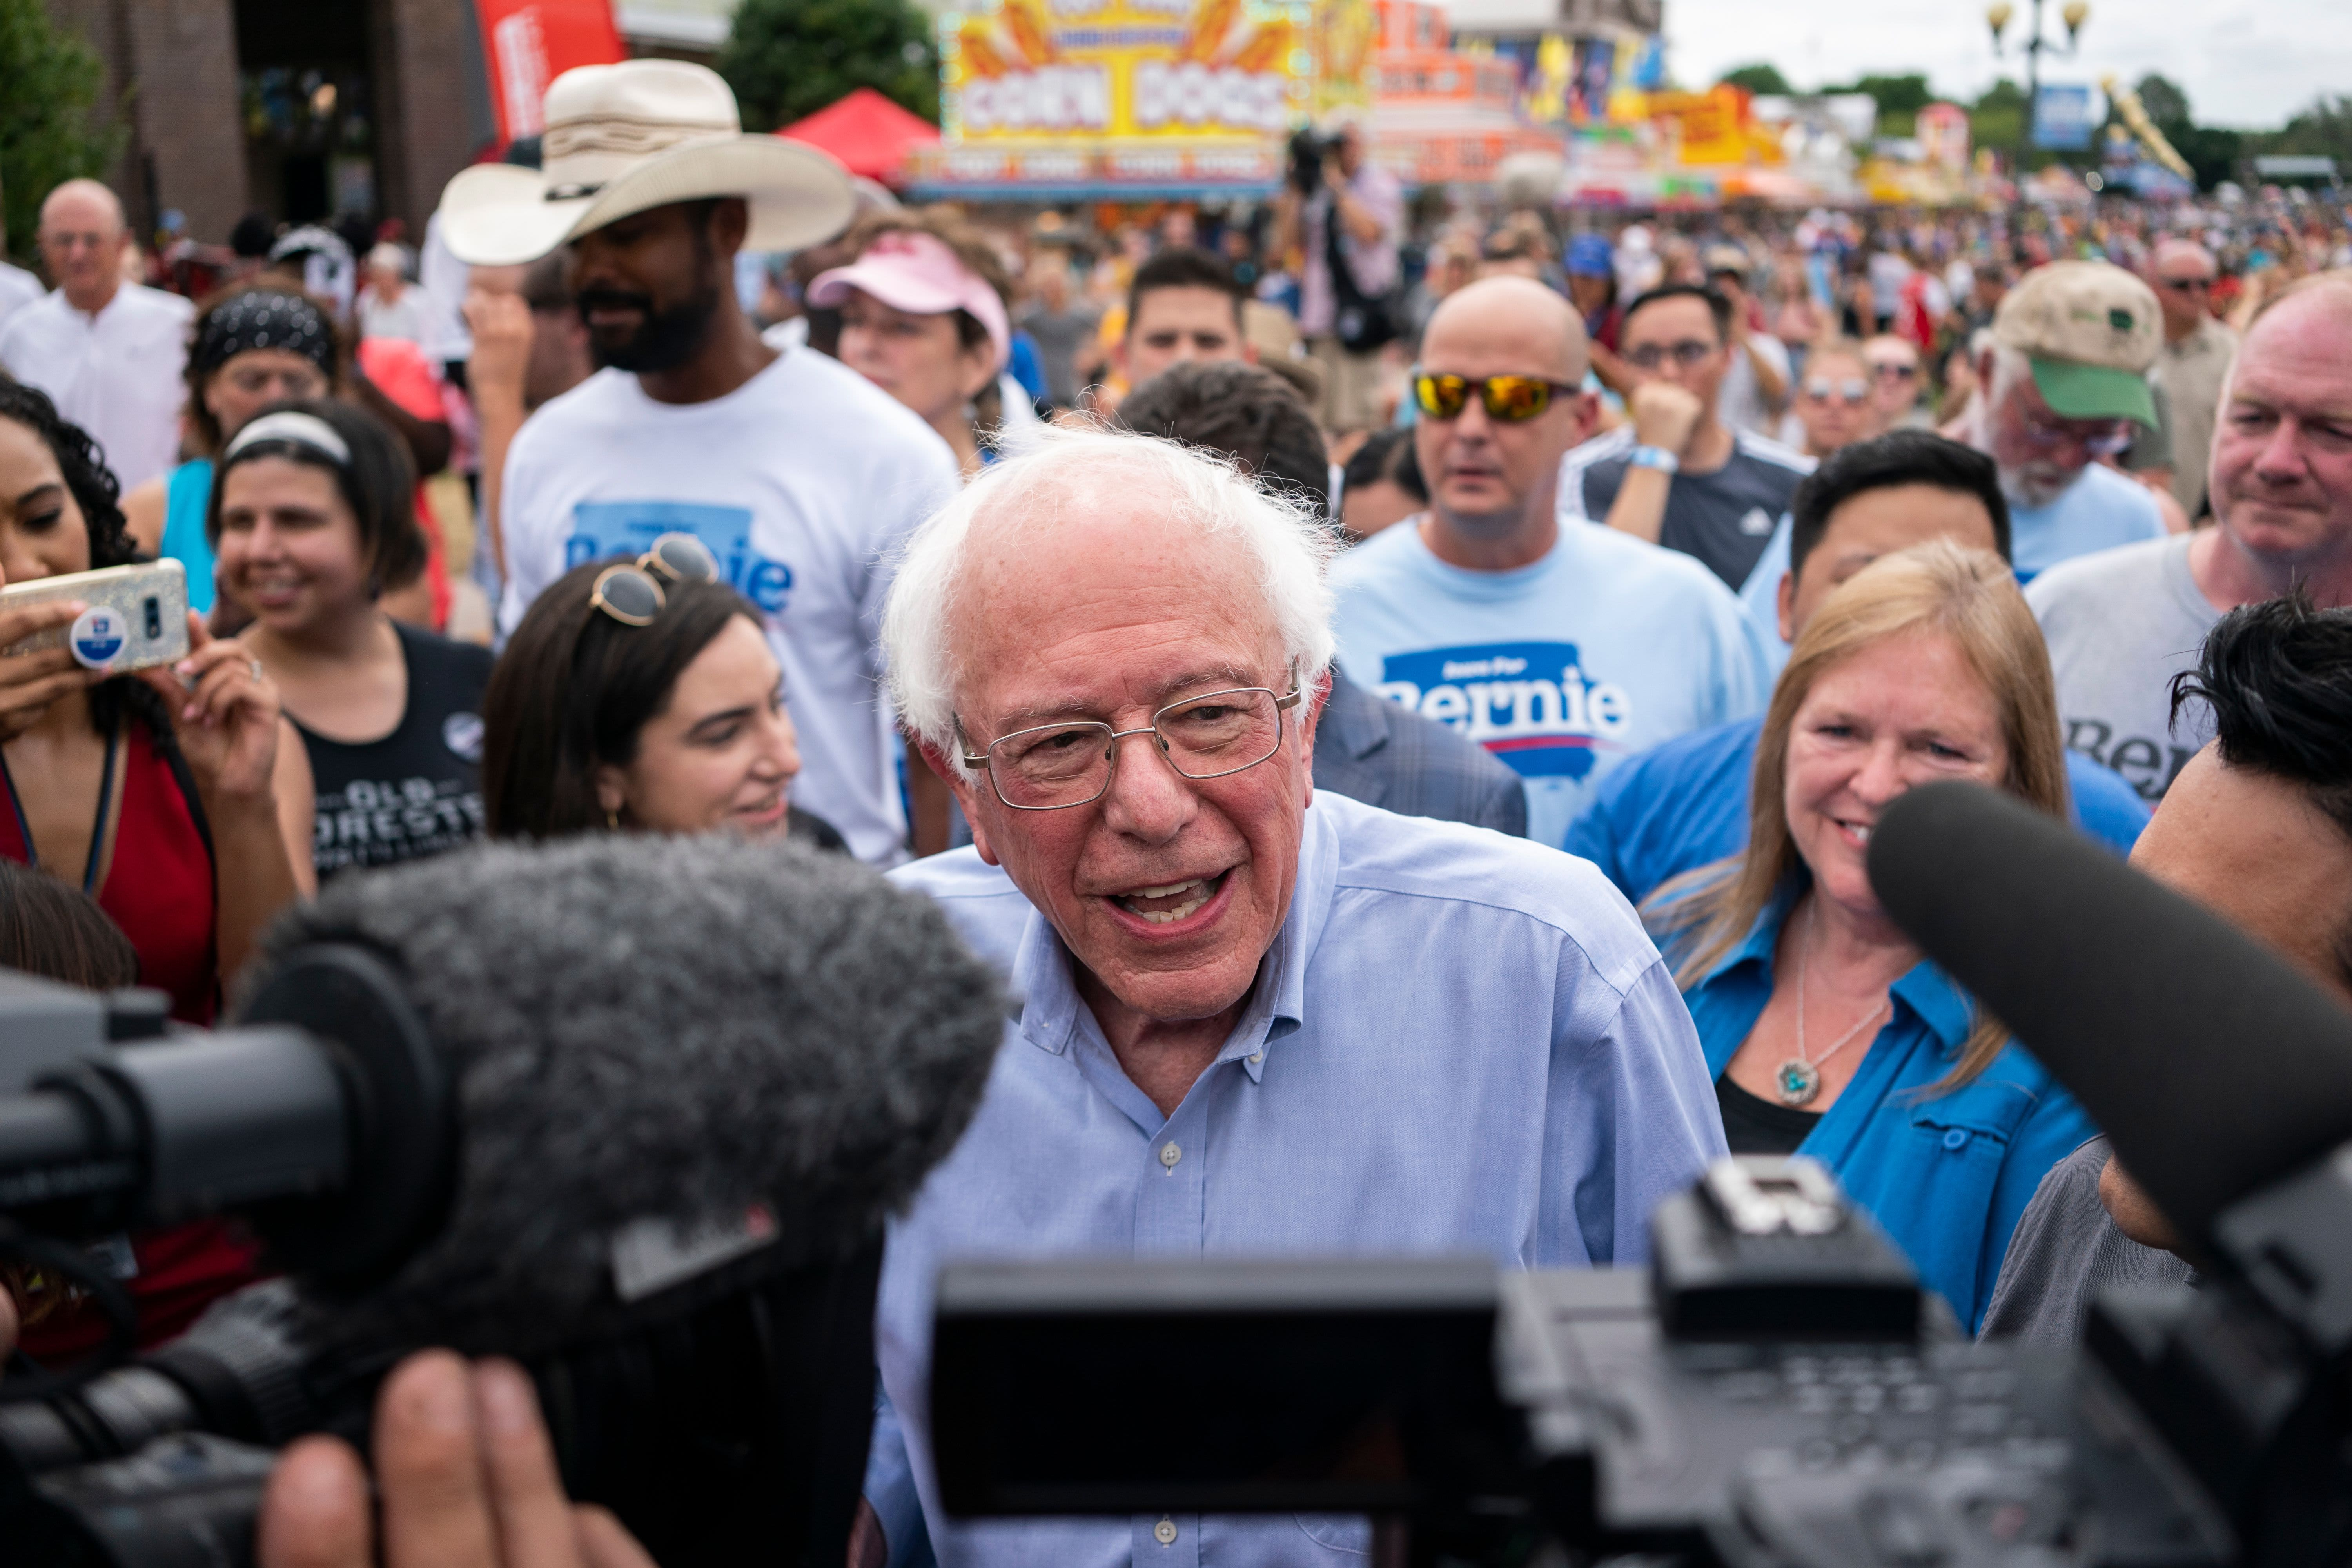 If Bernie Sanders wins Iowa Monday and gains momentum, that would spook the stock market